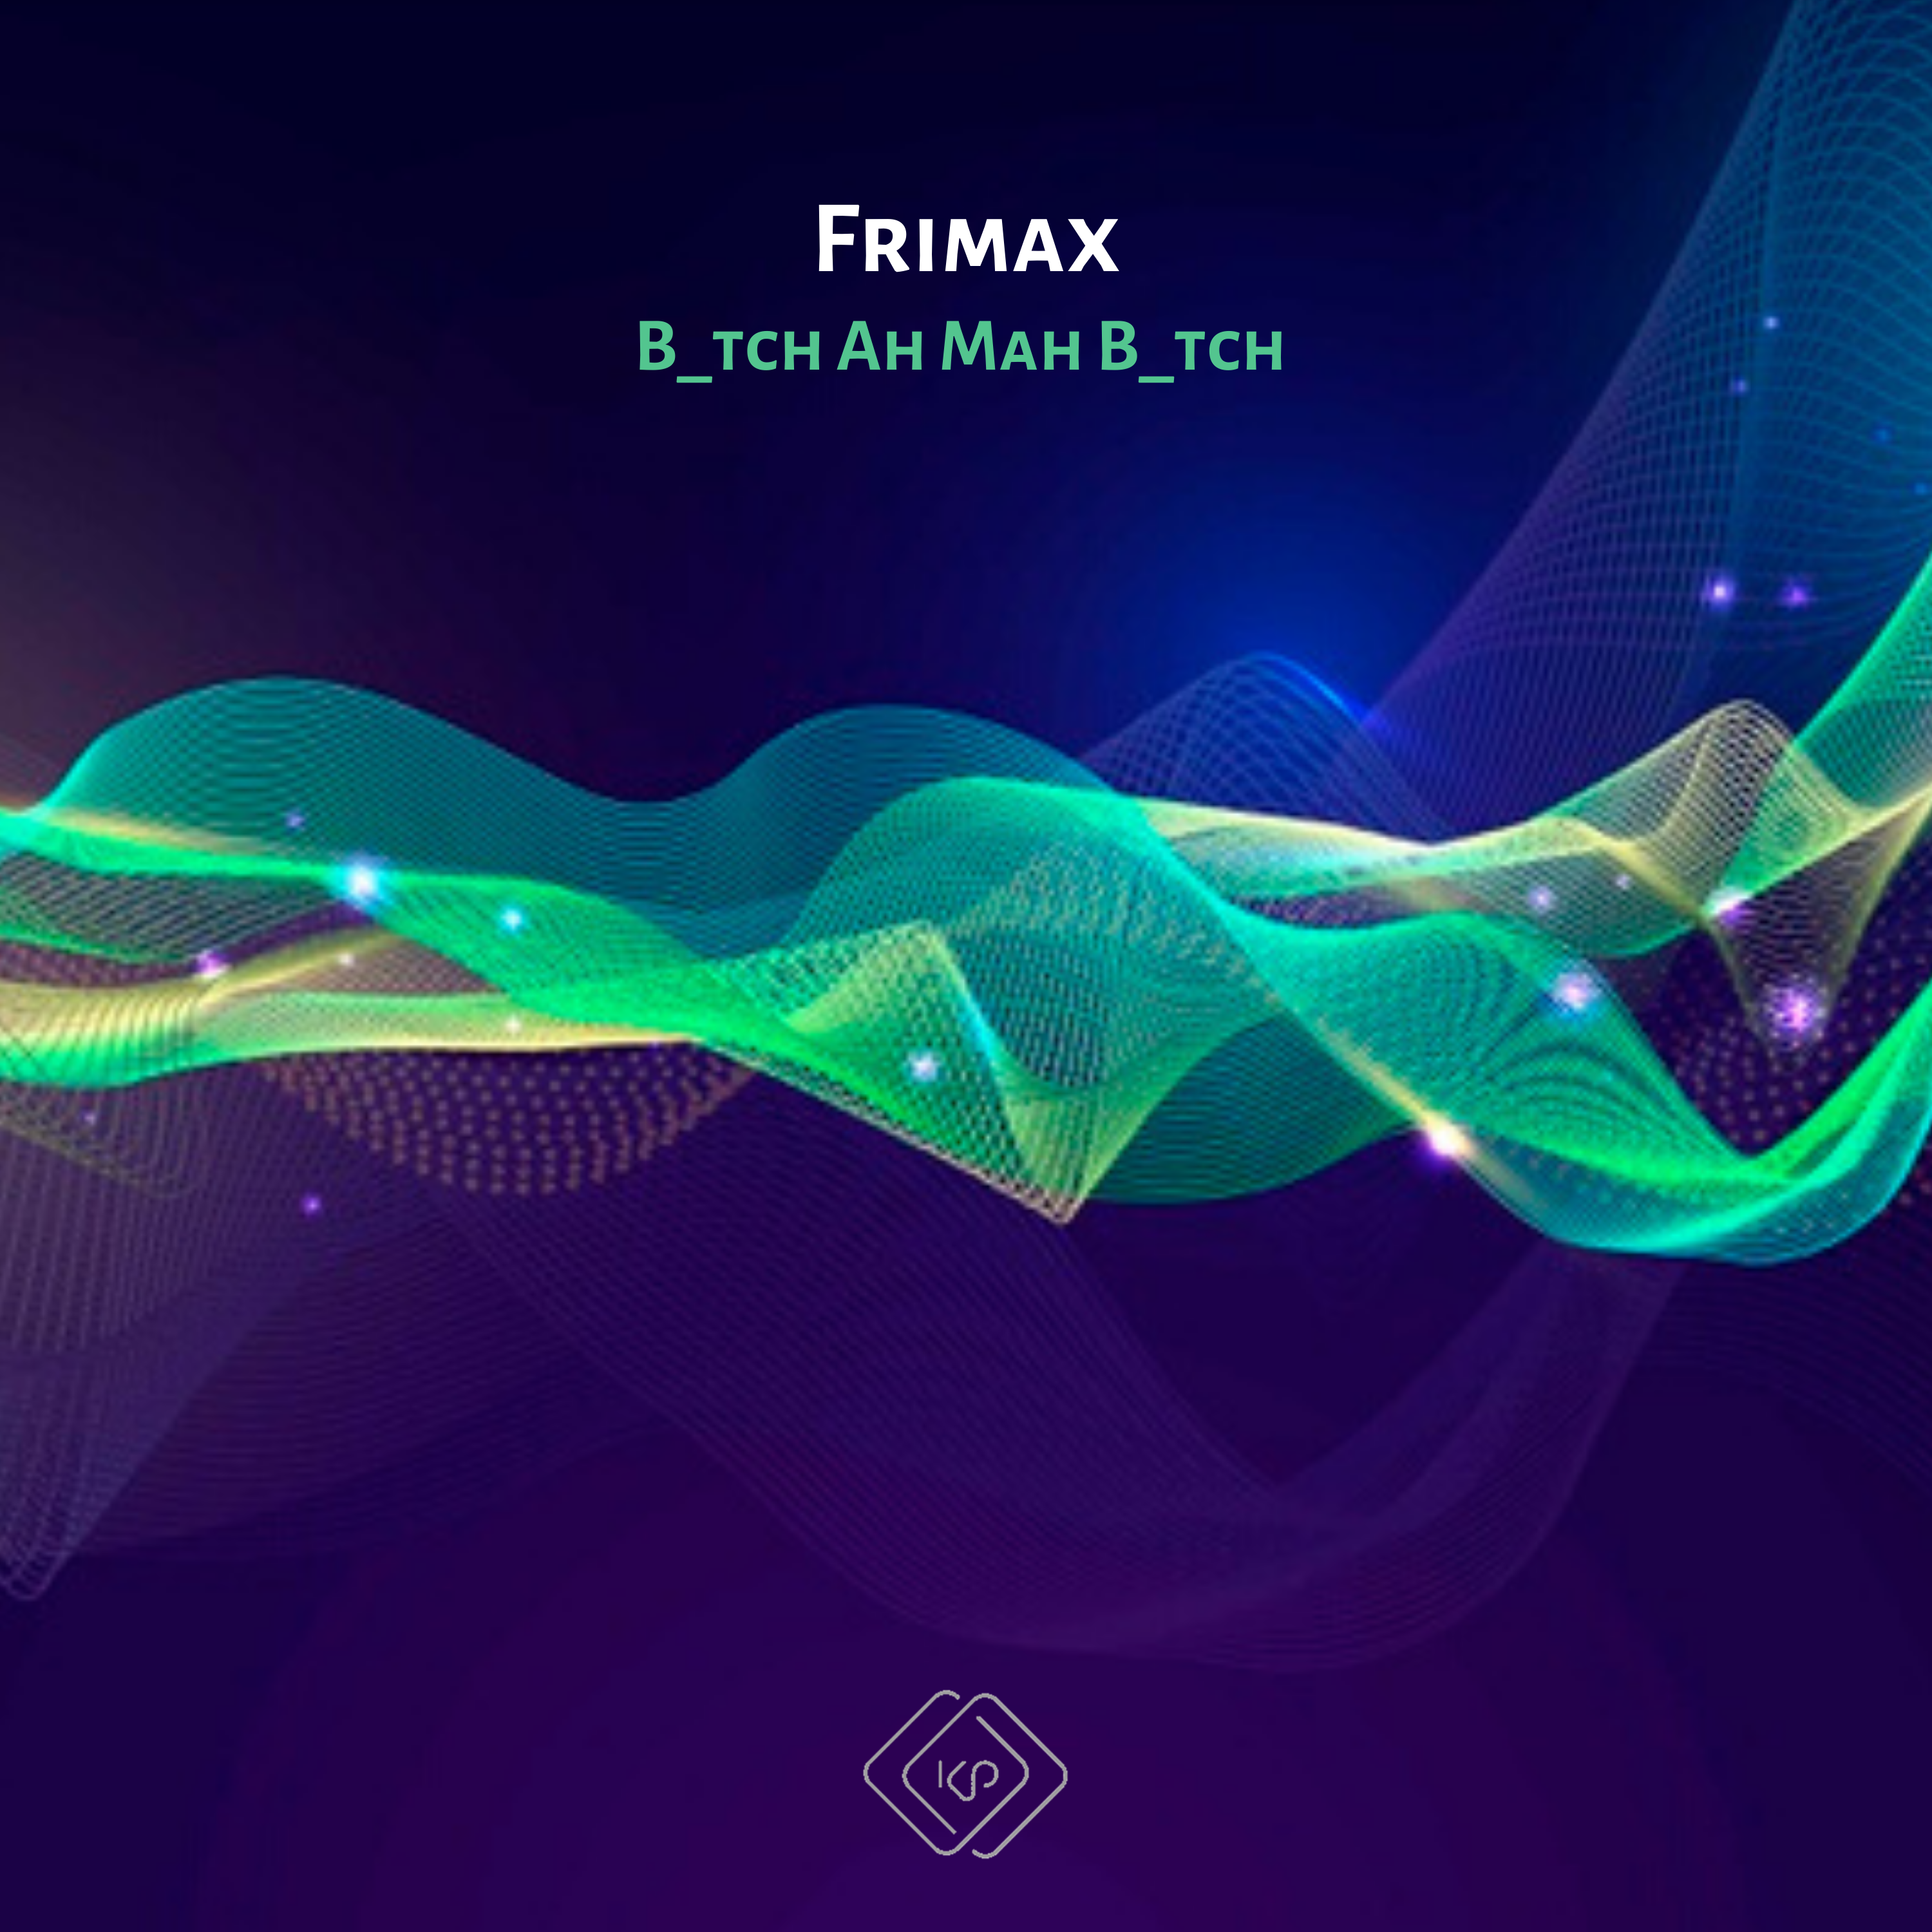 Frimax come with the new single 'B_tch Ah Mah B_tch' end of the 2020, 2020